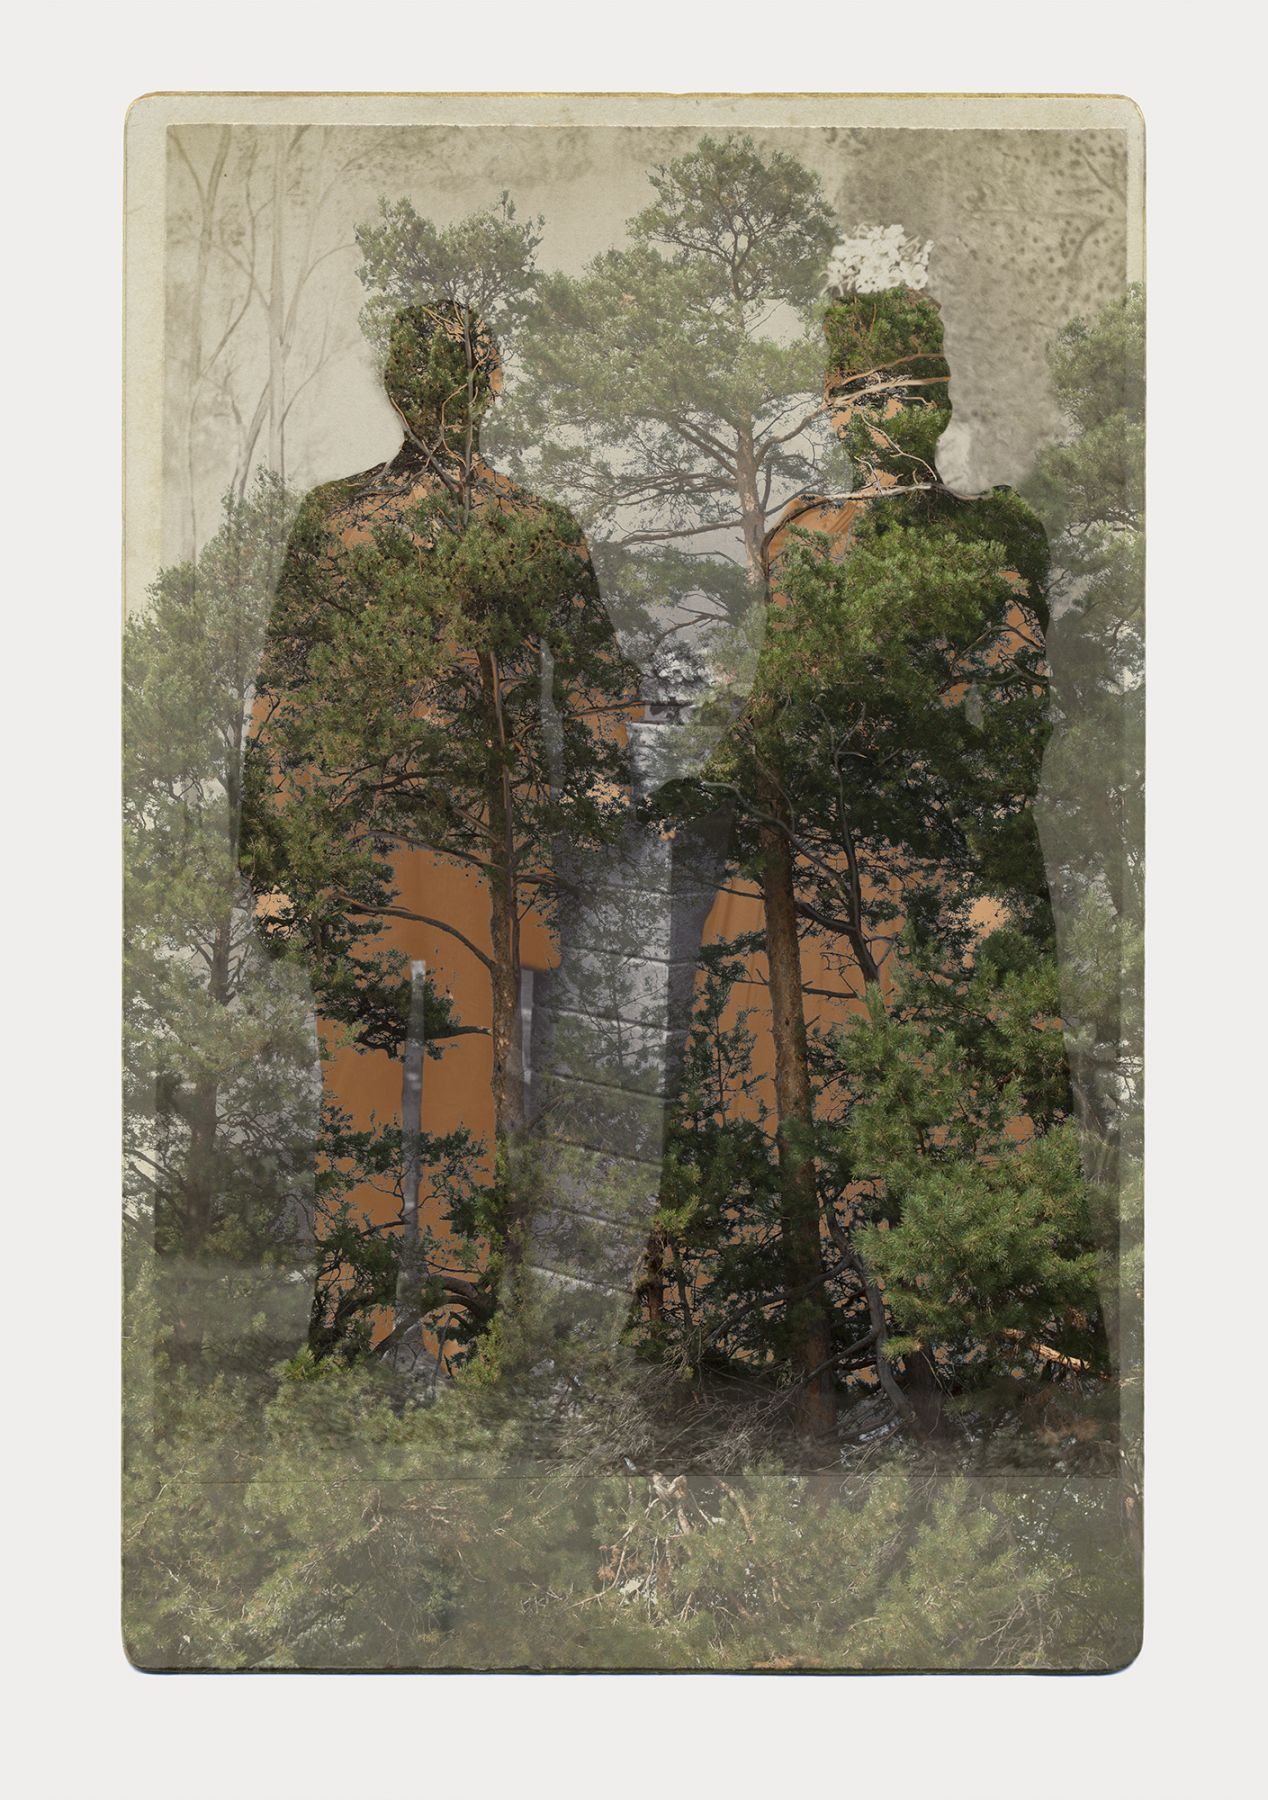 SARA ANGELUCCI | ARBORETUM (MAN/WOMAN/PINES) | PIGMENT PRINT ON ARCHIVAL PAPER | 31 X 44 INCHES | 2016